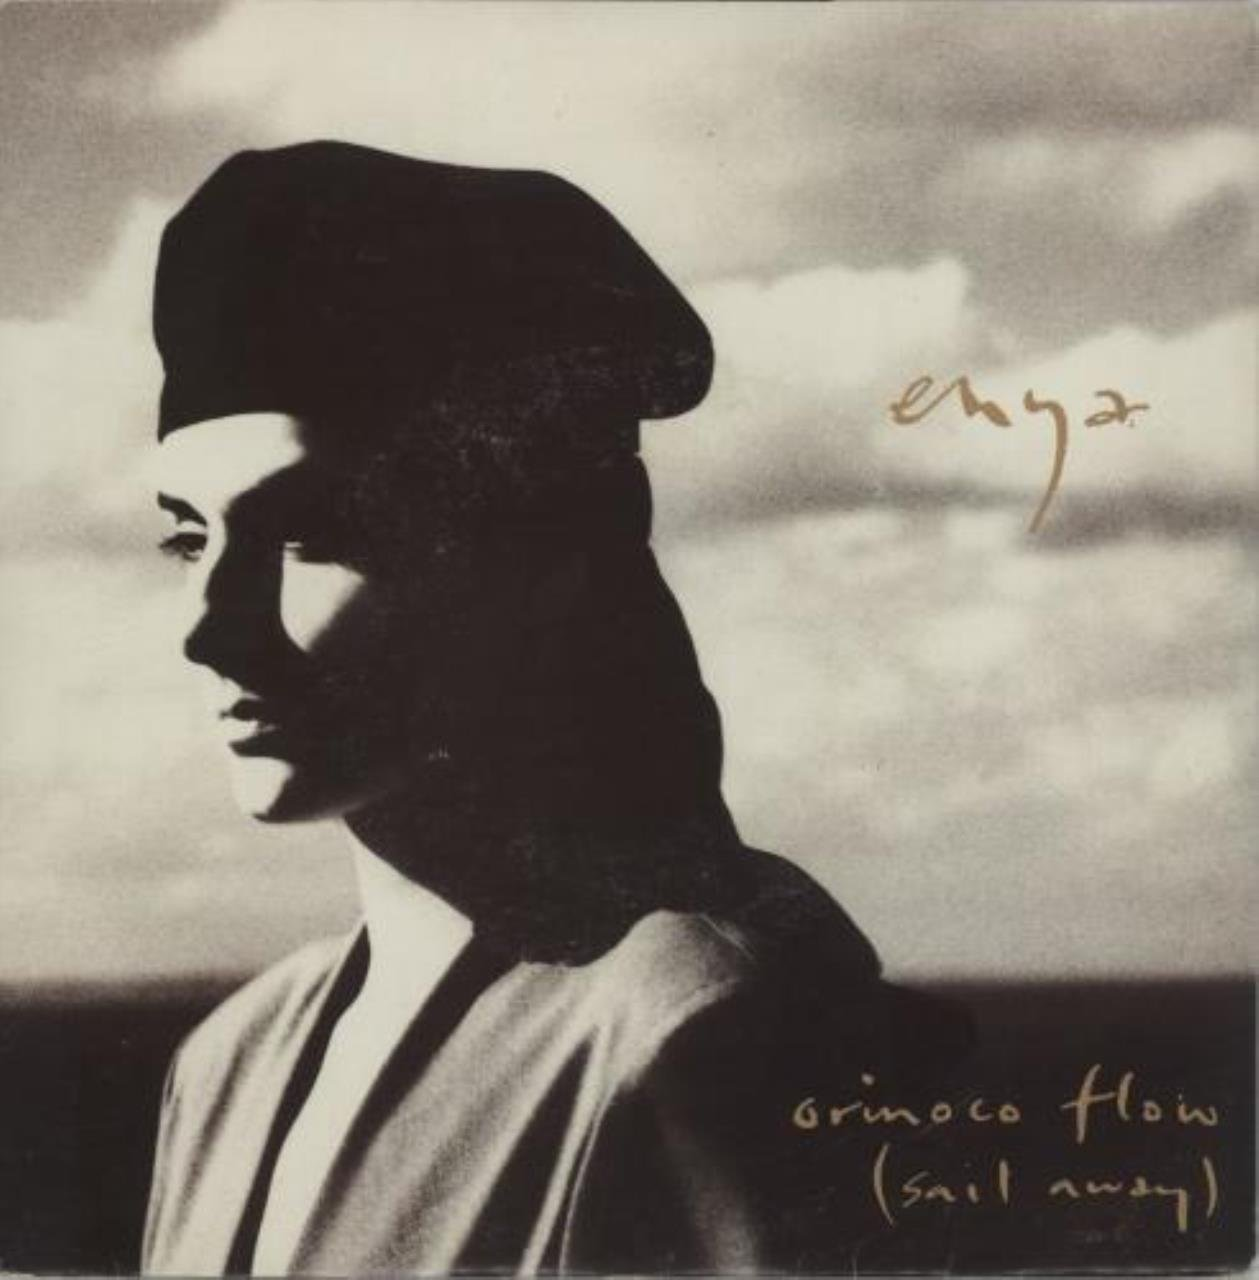 Enya - Orinoco Flow (Sail Away) - [7'']